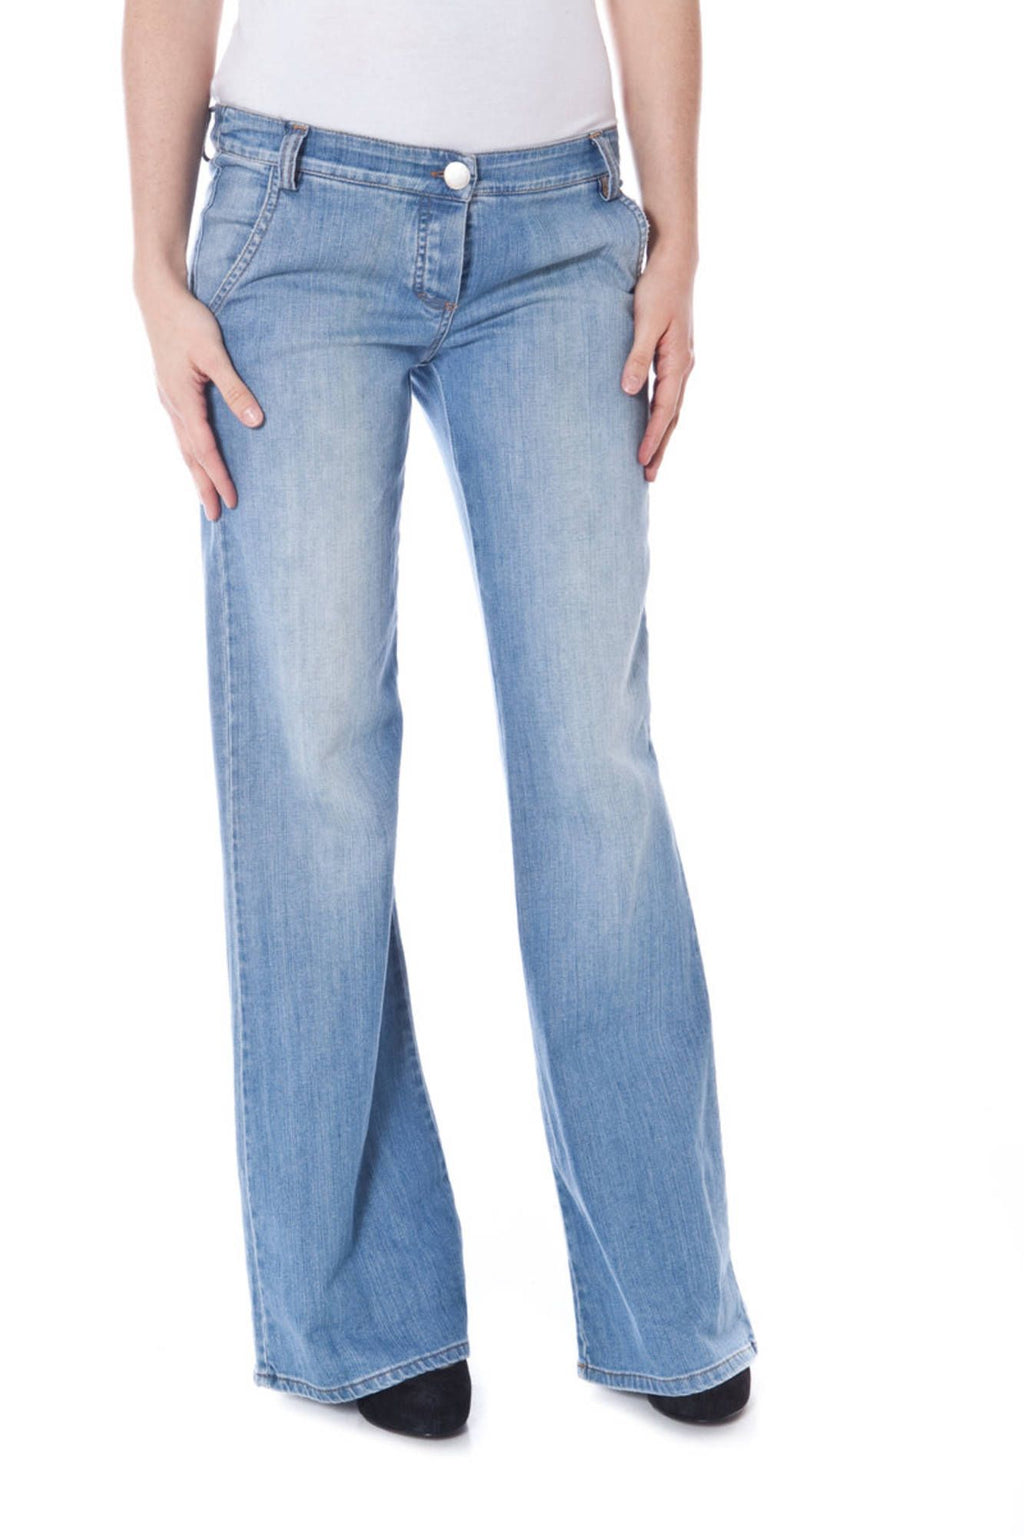 DENNY ROSE Denim Jeans Damen - Blau - SF7460